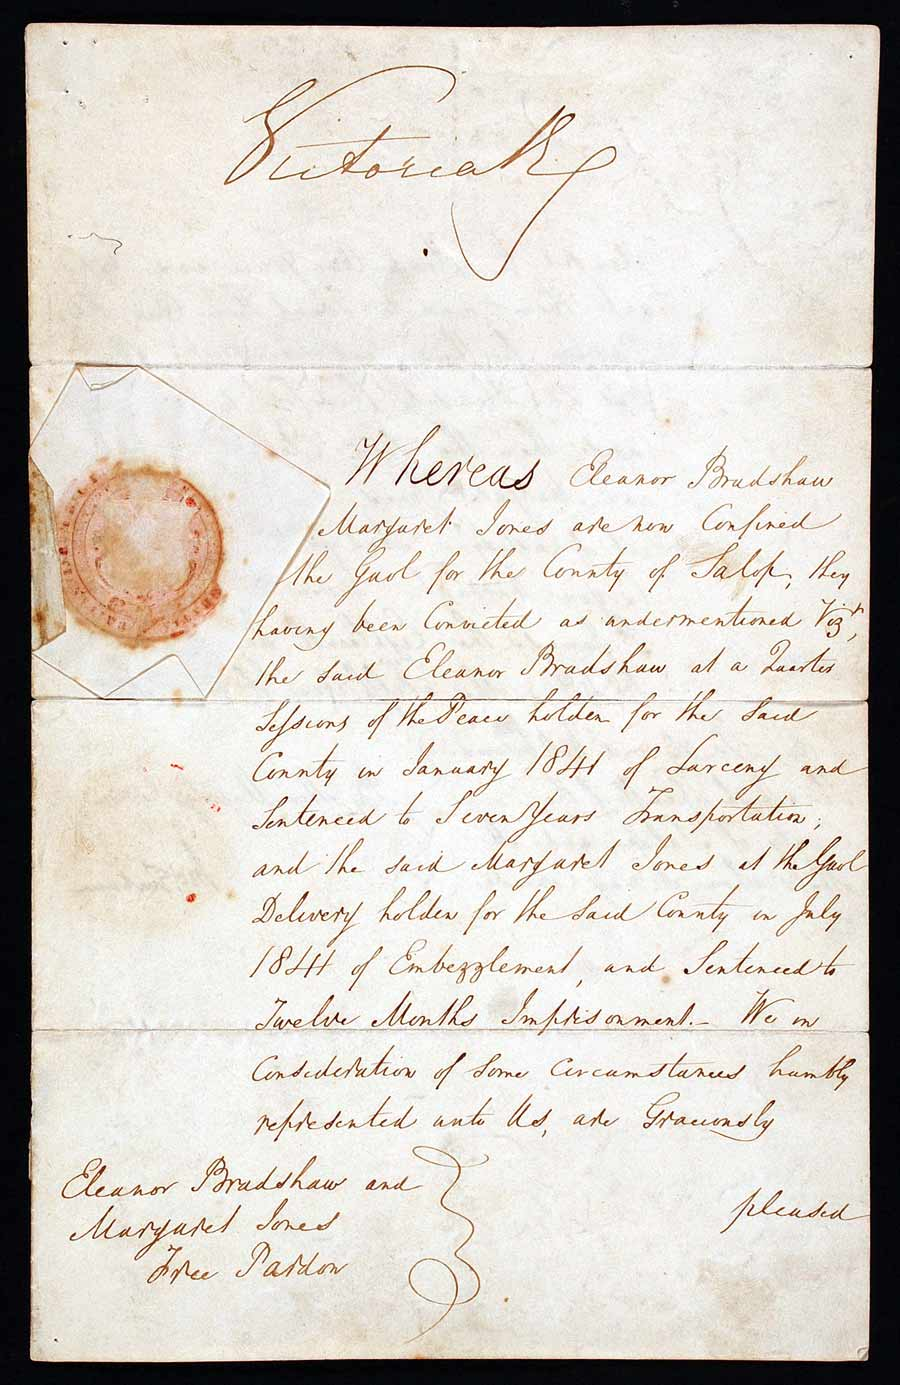 Royal pardon, signed by Queen Victoria (1819–1901) and issued by M E Grimshaw [?] to Henry Justice, High Sheriff of Shropshire, 18 March 1842.